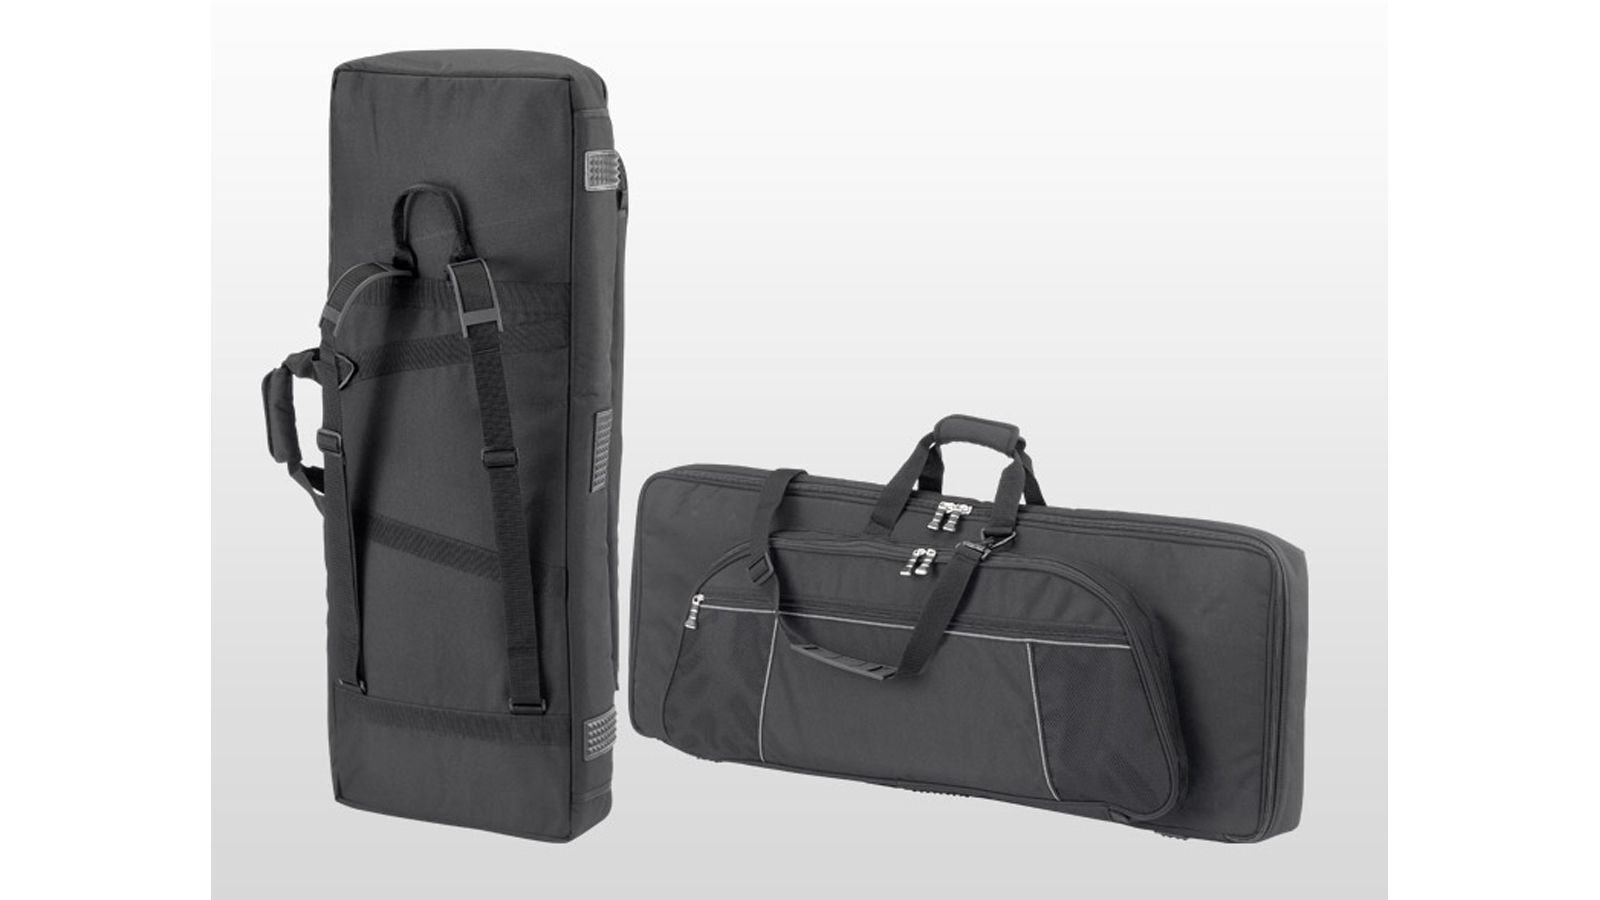 Soundwear Keyboard Bag Protector 83 x 24 x 10 cm